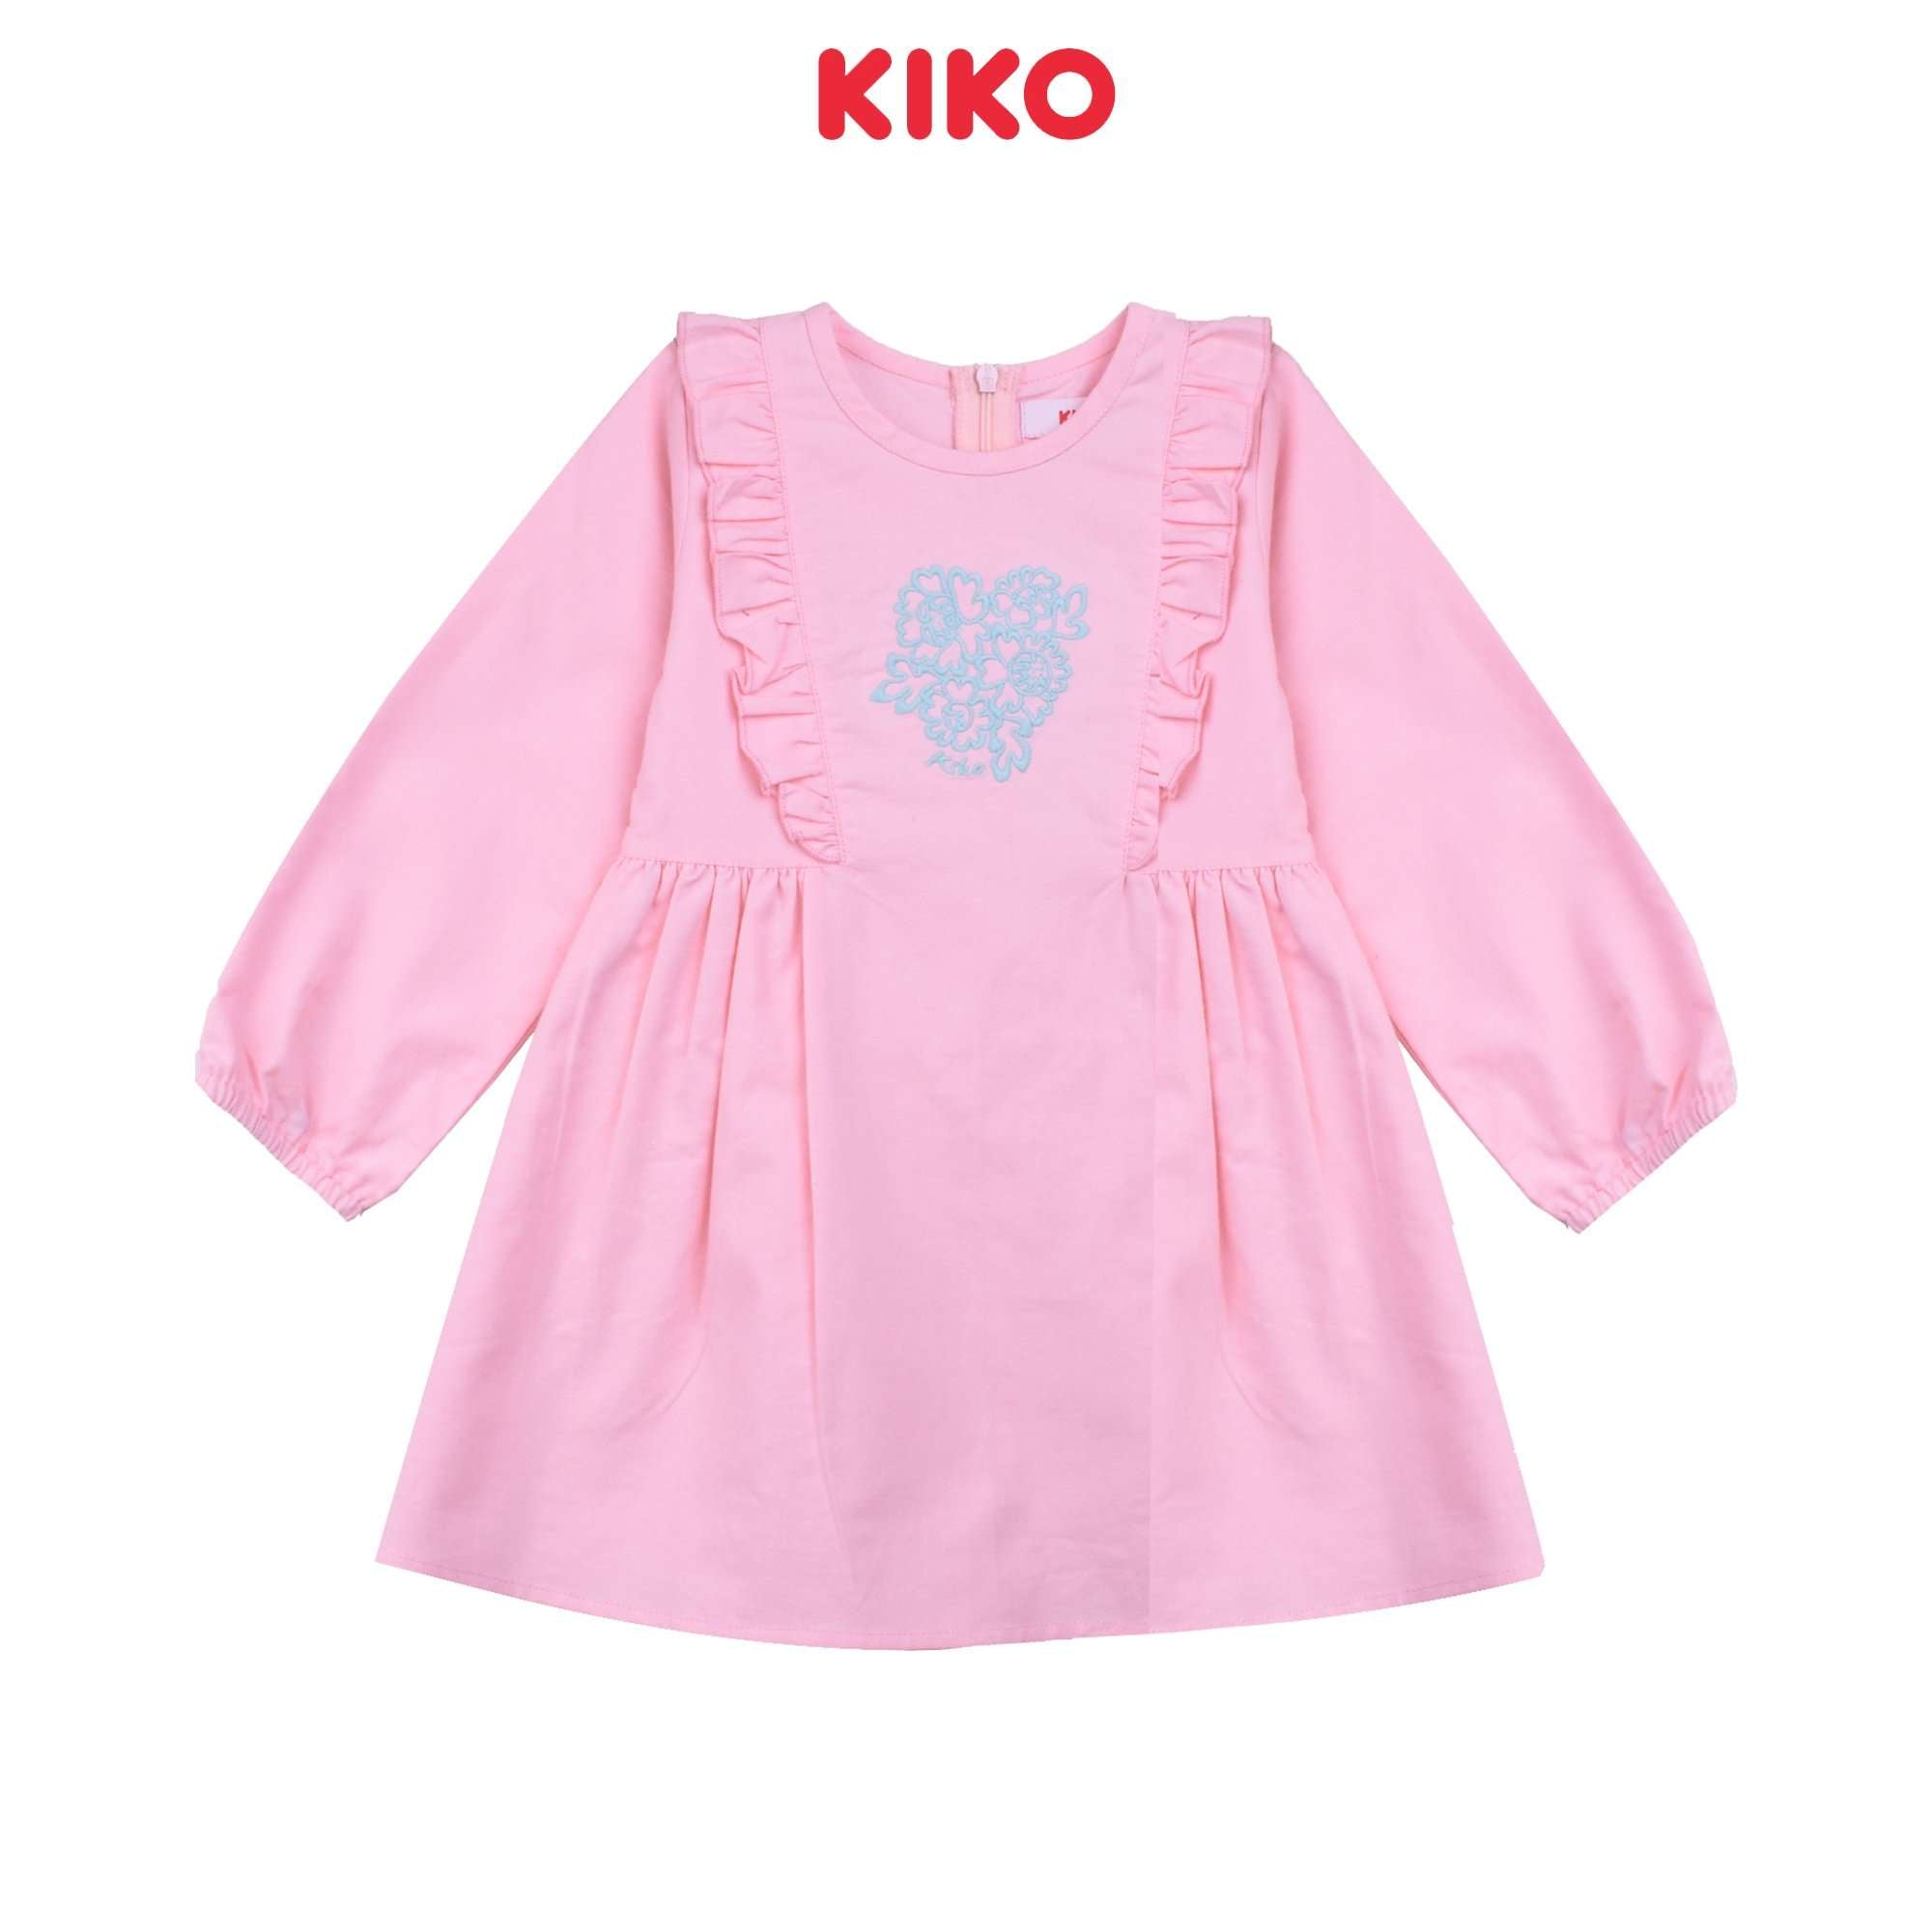 KIKO Girl Long Sleeve Dress K925001-3122-P5 : Buy KIKO online at CMG.MY